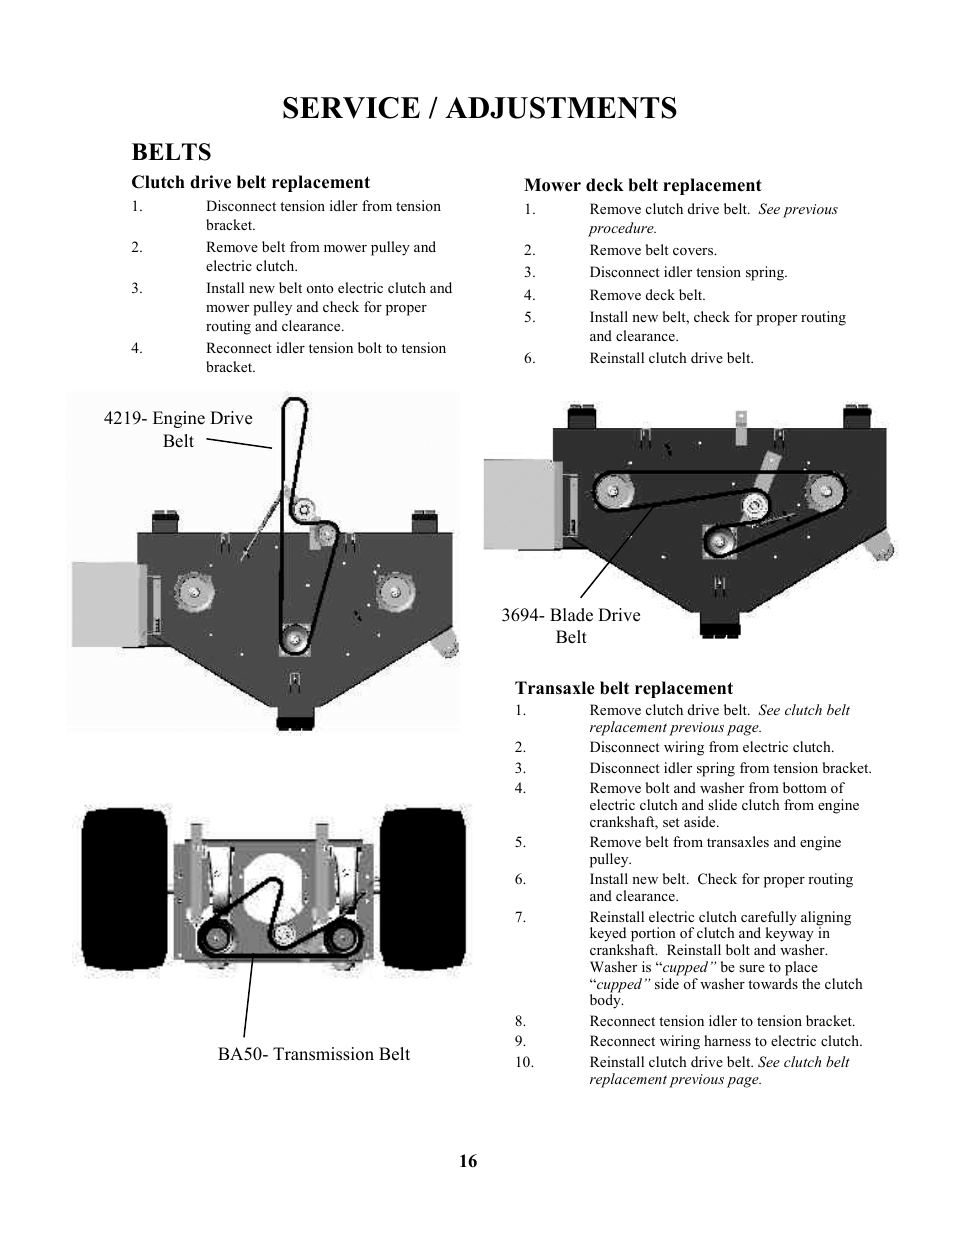 Service Adjustments Belts Swisher Zt17542 User Manual Page 16 Wiring Harness 24